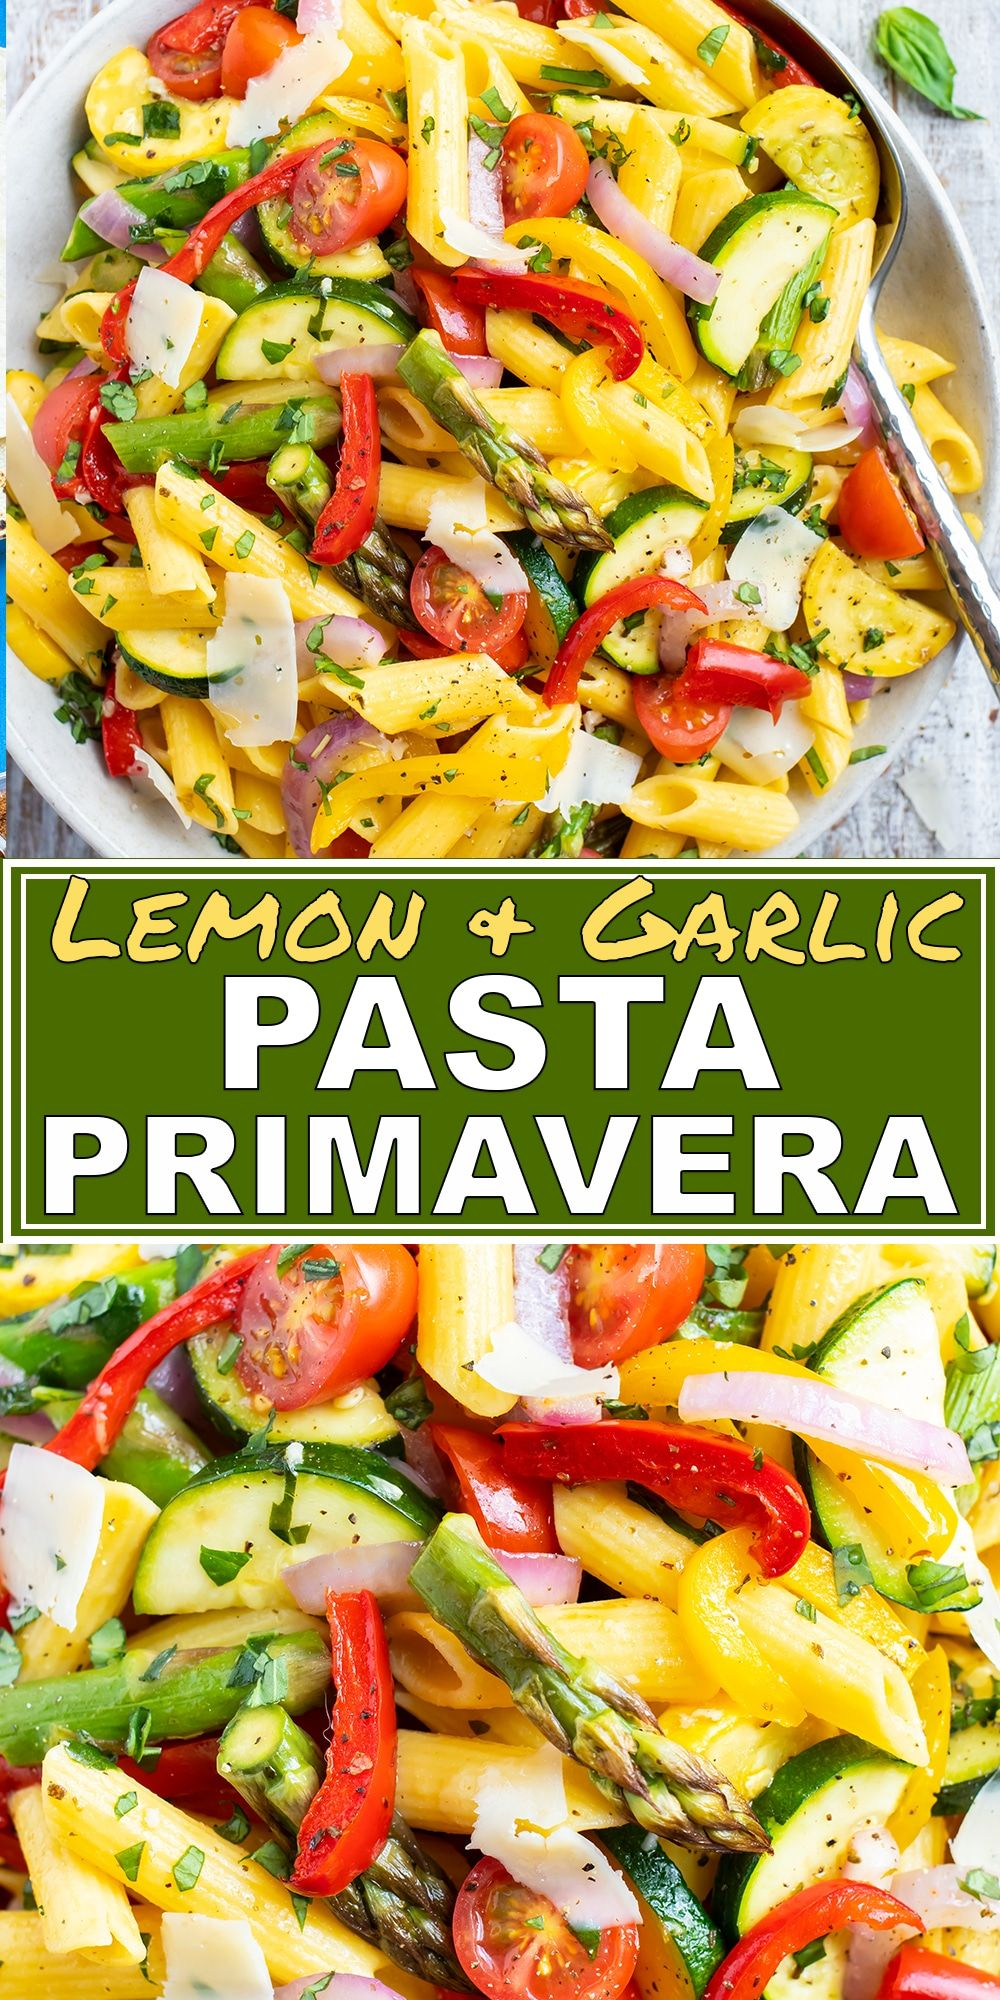 Pasta Primavera Recipe with Lemon Garlic Butter Sauce - Evolving Table